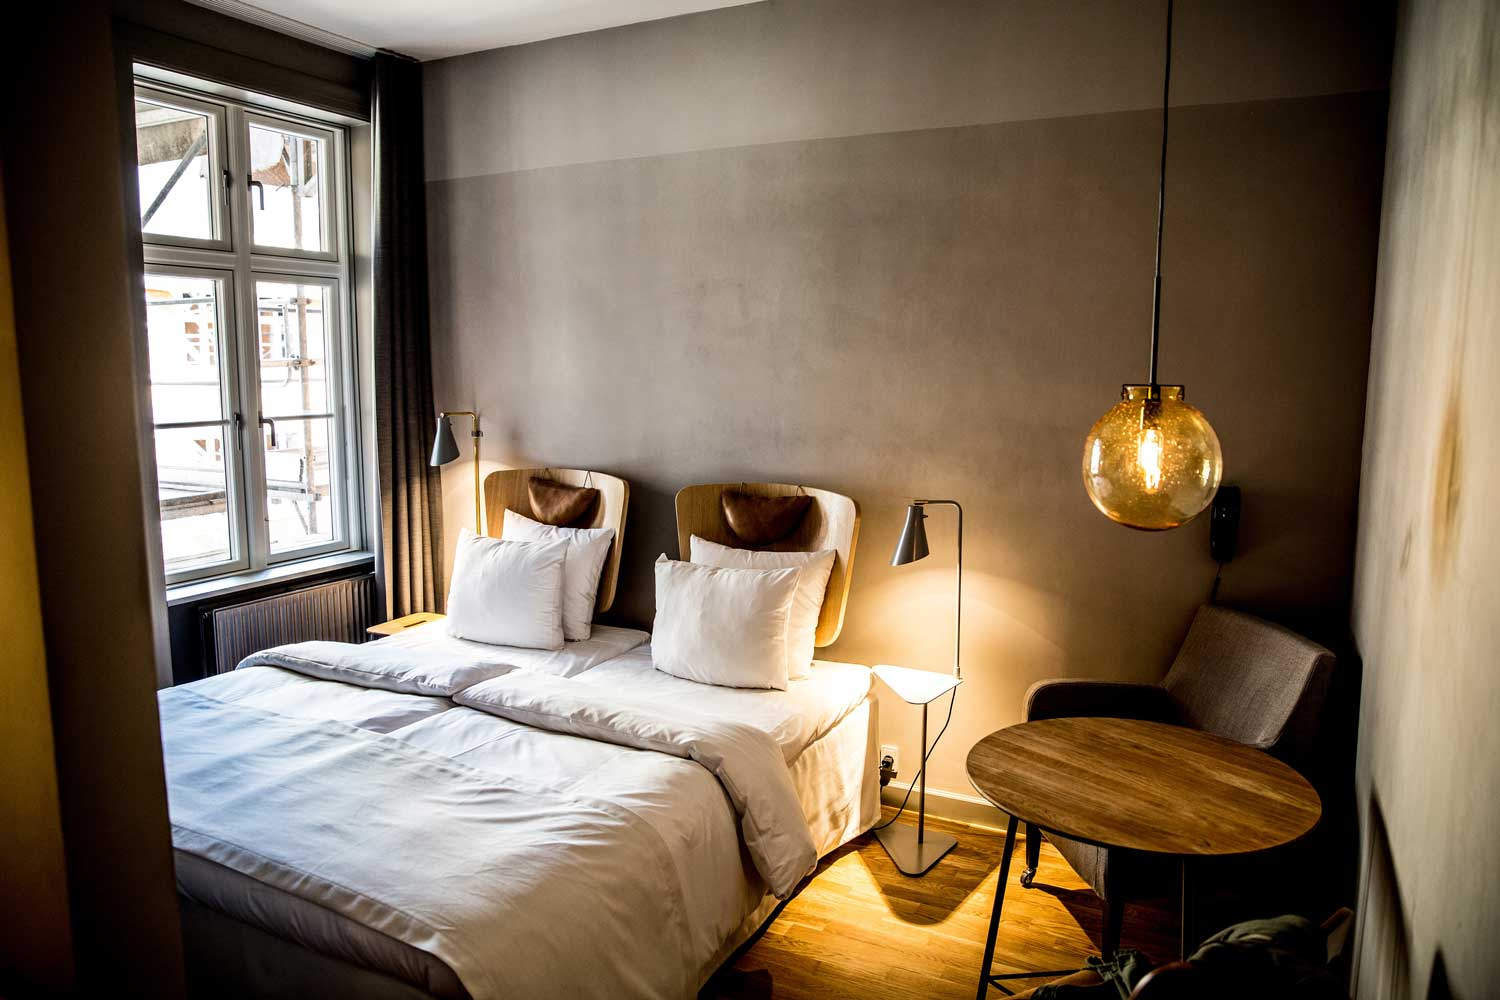 Hotel sp34 copenhagen denmark yellowtrace for Design hotel pauschalreise